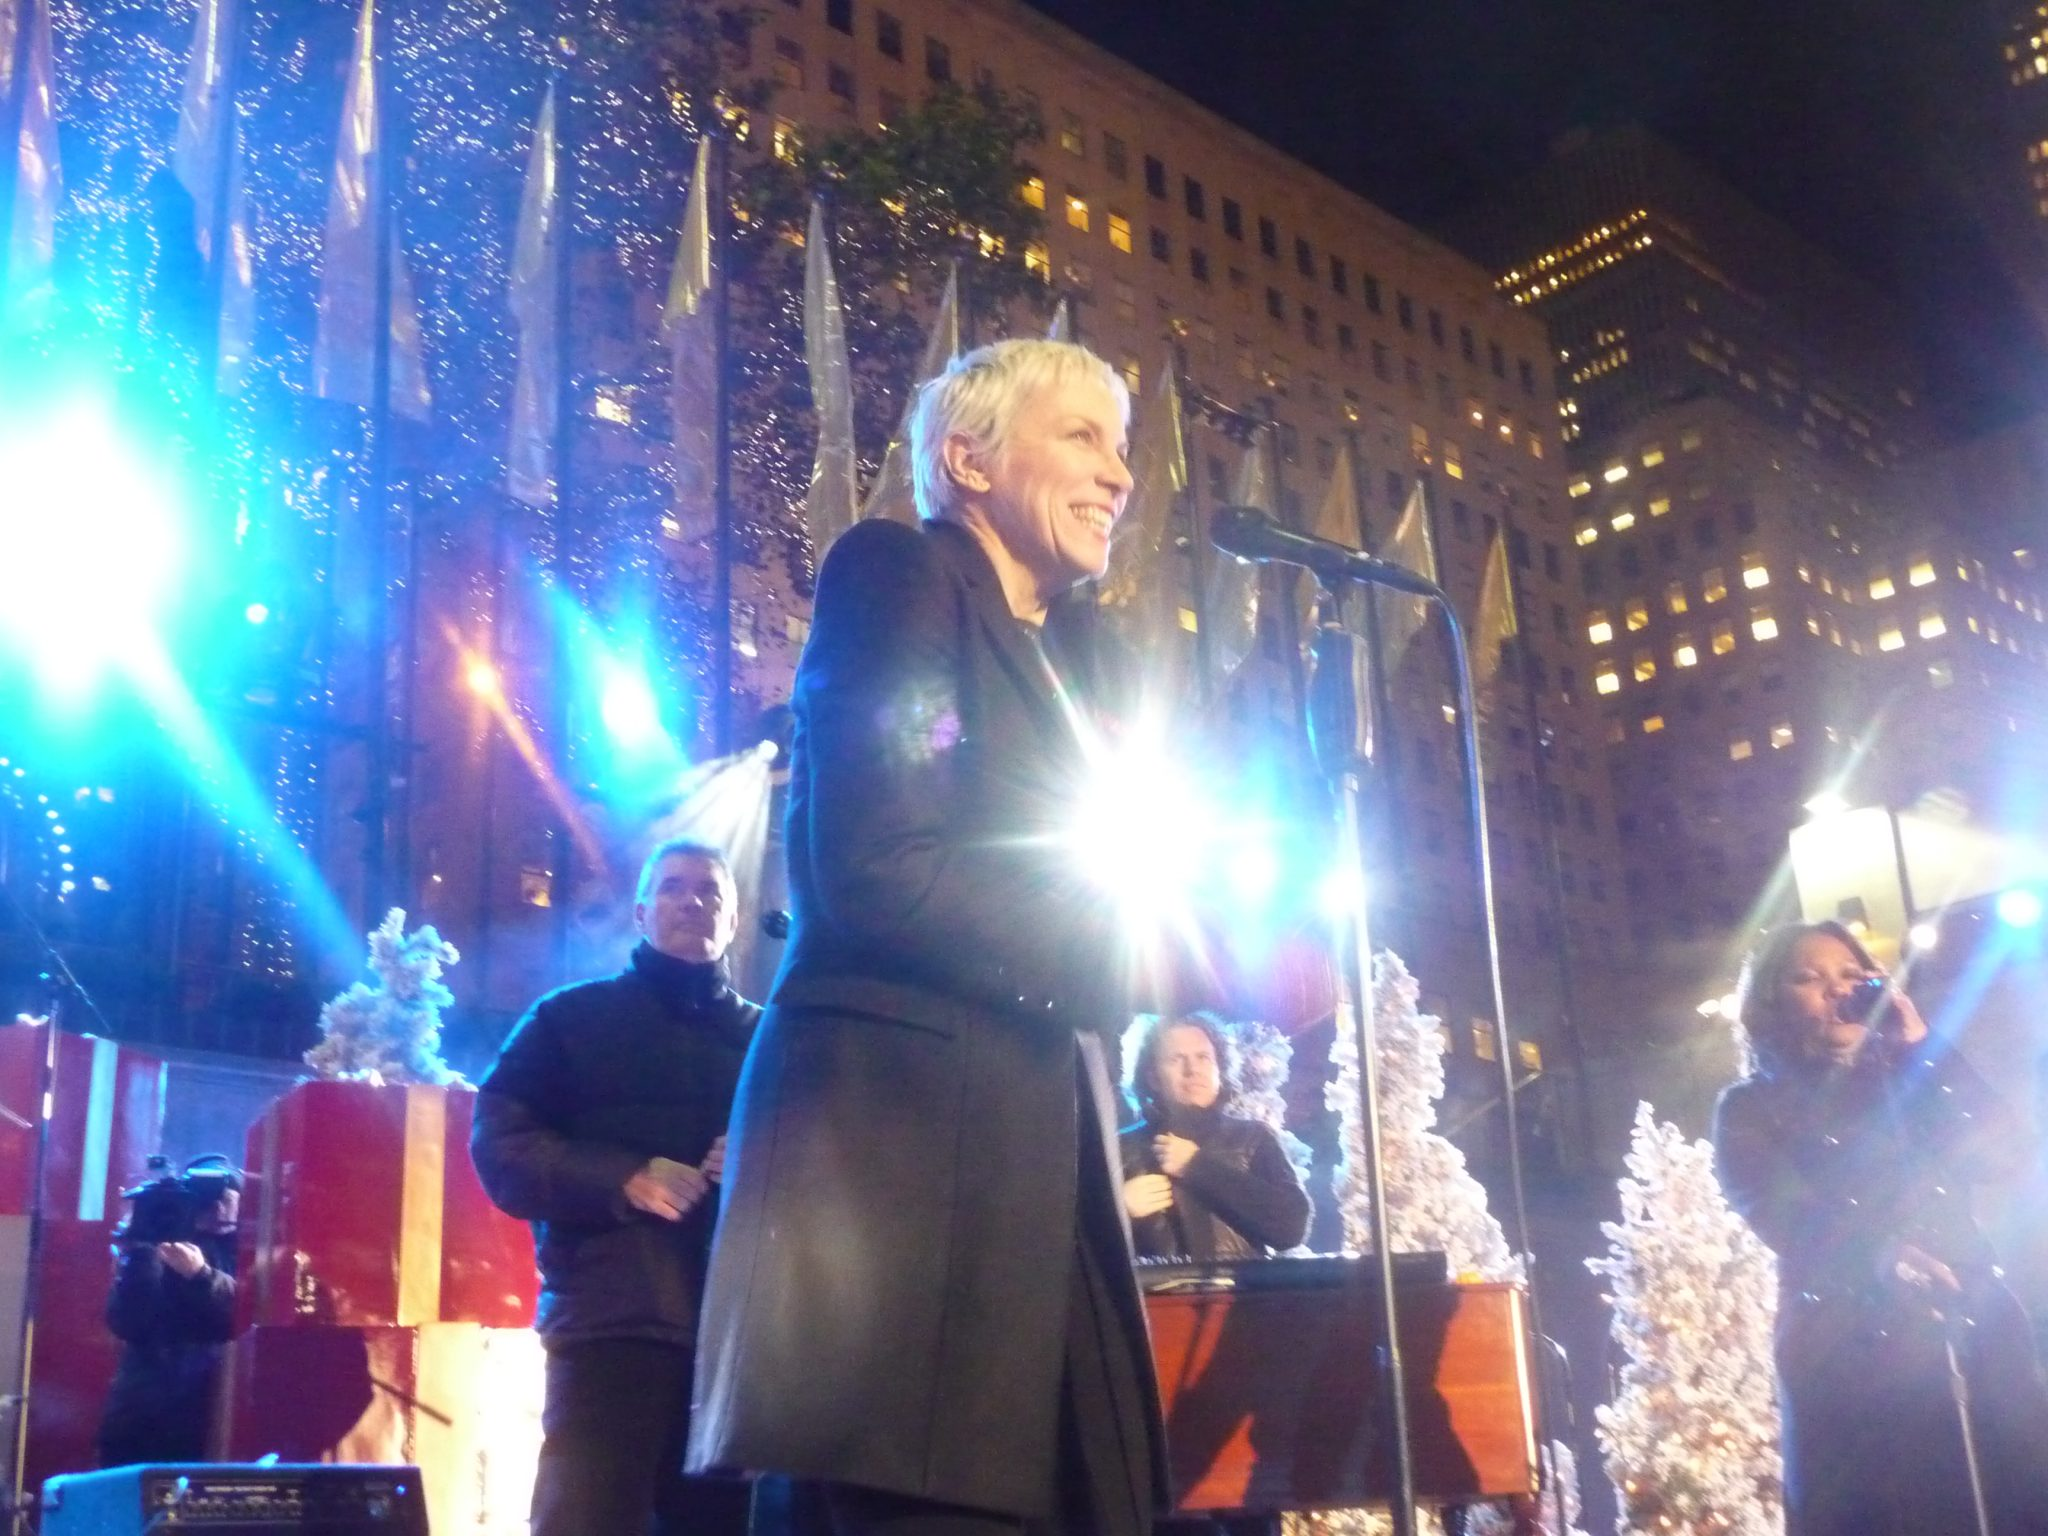 Annie Lennox At Rockefeller Tree Lighting Ceremony – Watch now!